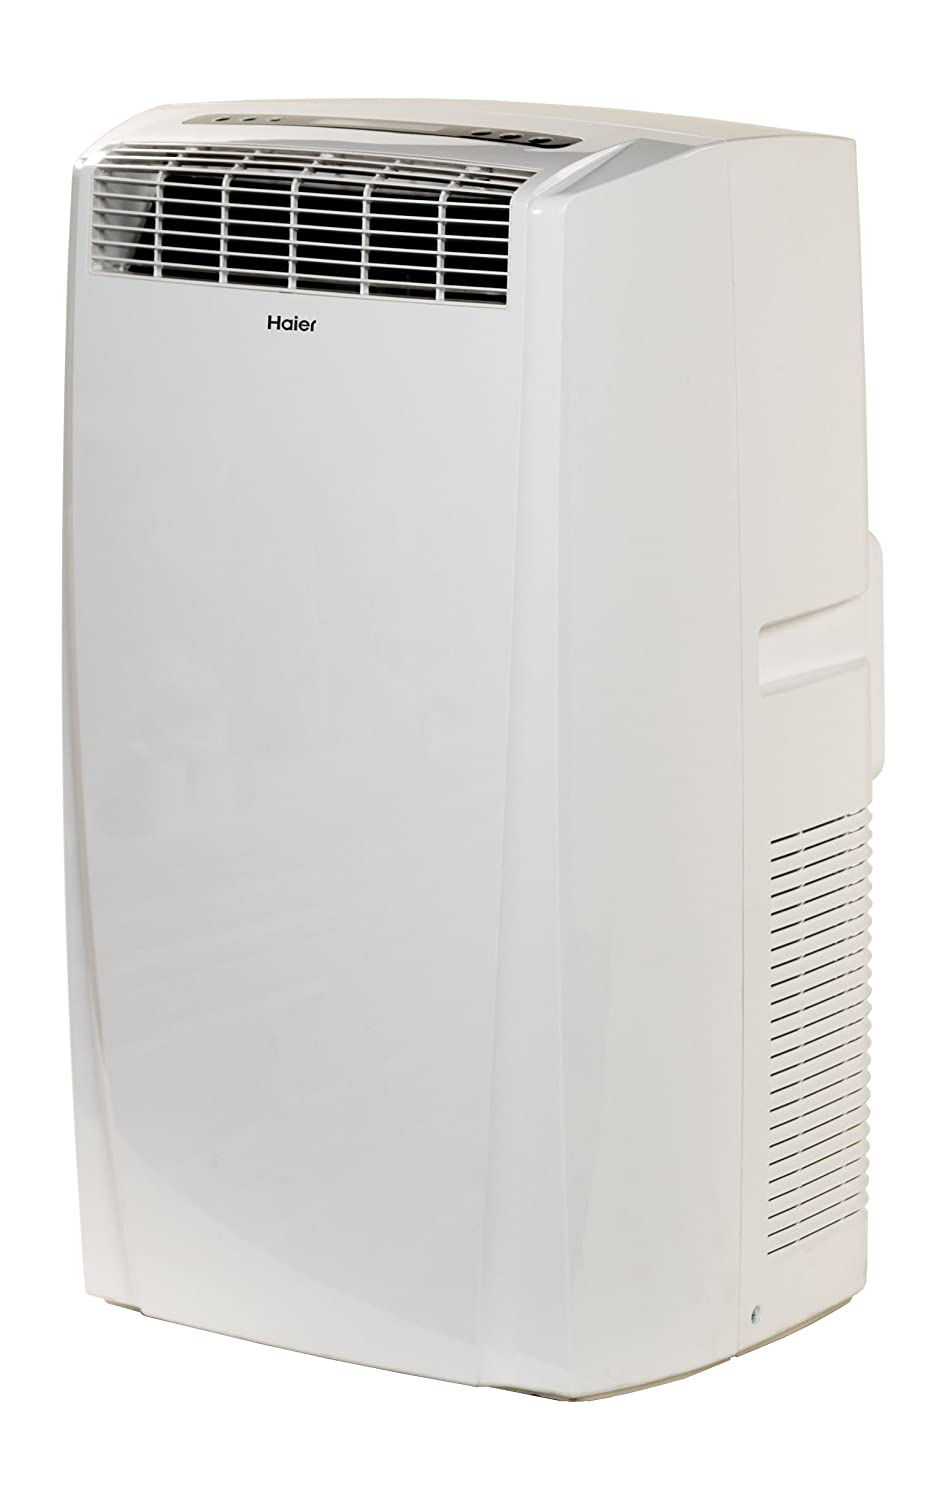 Haier Hpb10xcr 10000 Btu Portable Air Conditioner  Ebay. Kitchen Can Light Placement. Pictures Of Glass Tile Backsplash In Kitchen. Porcelain Tile For Kitchen. Kitchen And Company Newington Nh. Blue Kitchen Canister Set. Small Outdoor Kitchen Ideas. Yankee Candle Country Kitchen. Kitchen Pro Cabinets